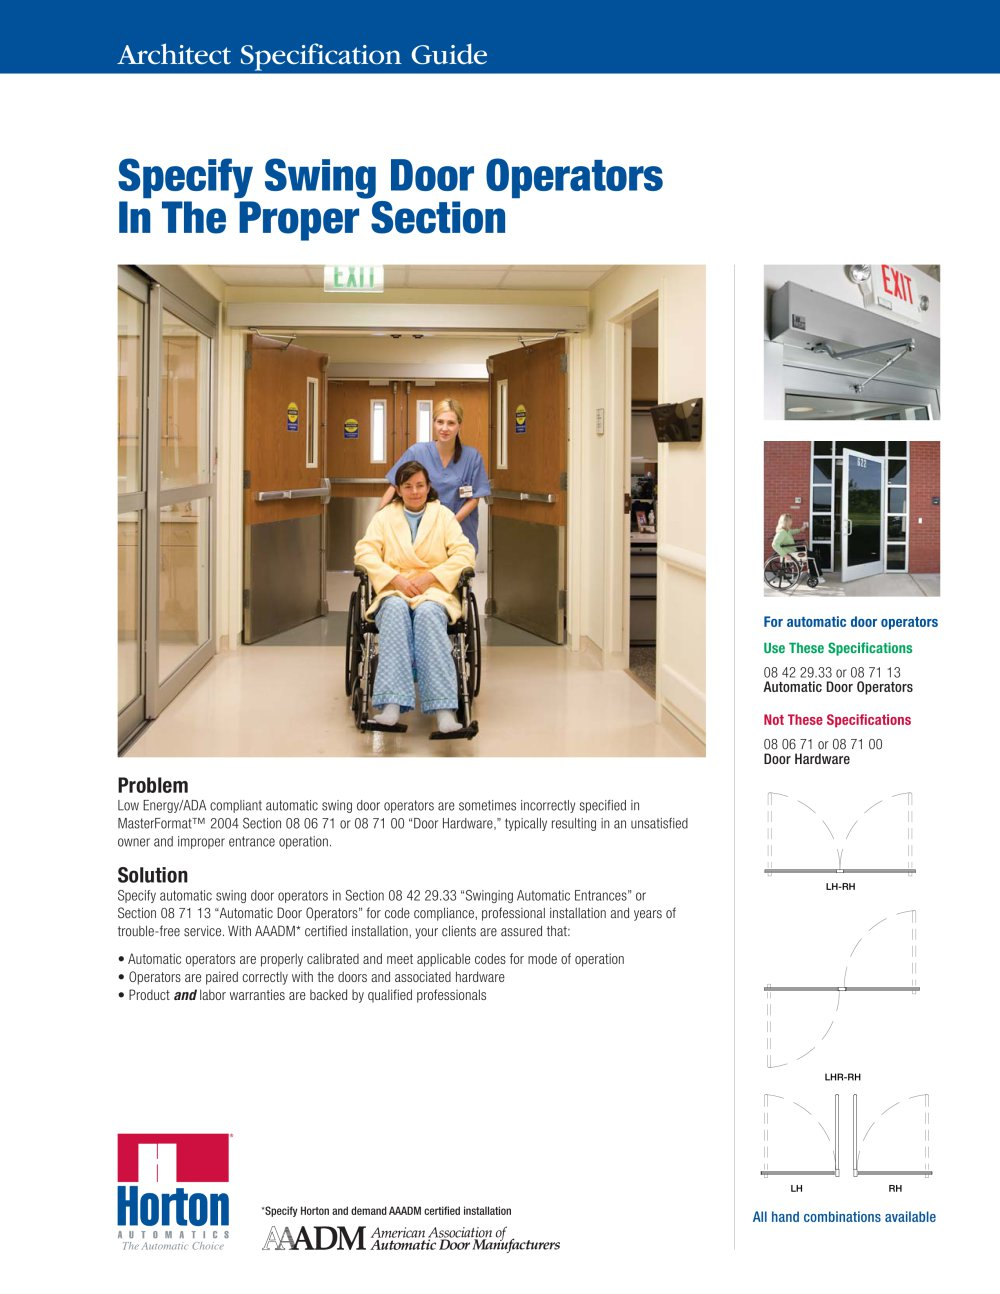 ADA Compliant Swinging - Specify Swings Doors - 1 / 2 Pages  sc 1 st  Catalogues Medicalexpo & ADA Compliant Swinging - Specify Swings Doors - Horton Doors - PDF ...